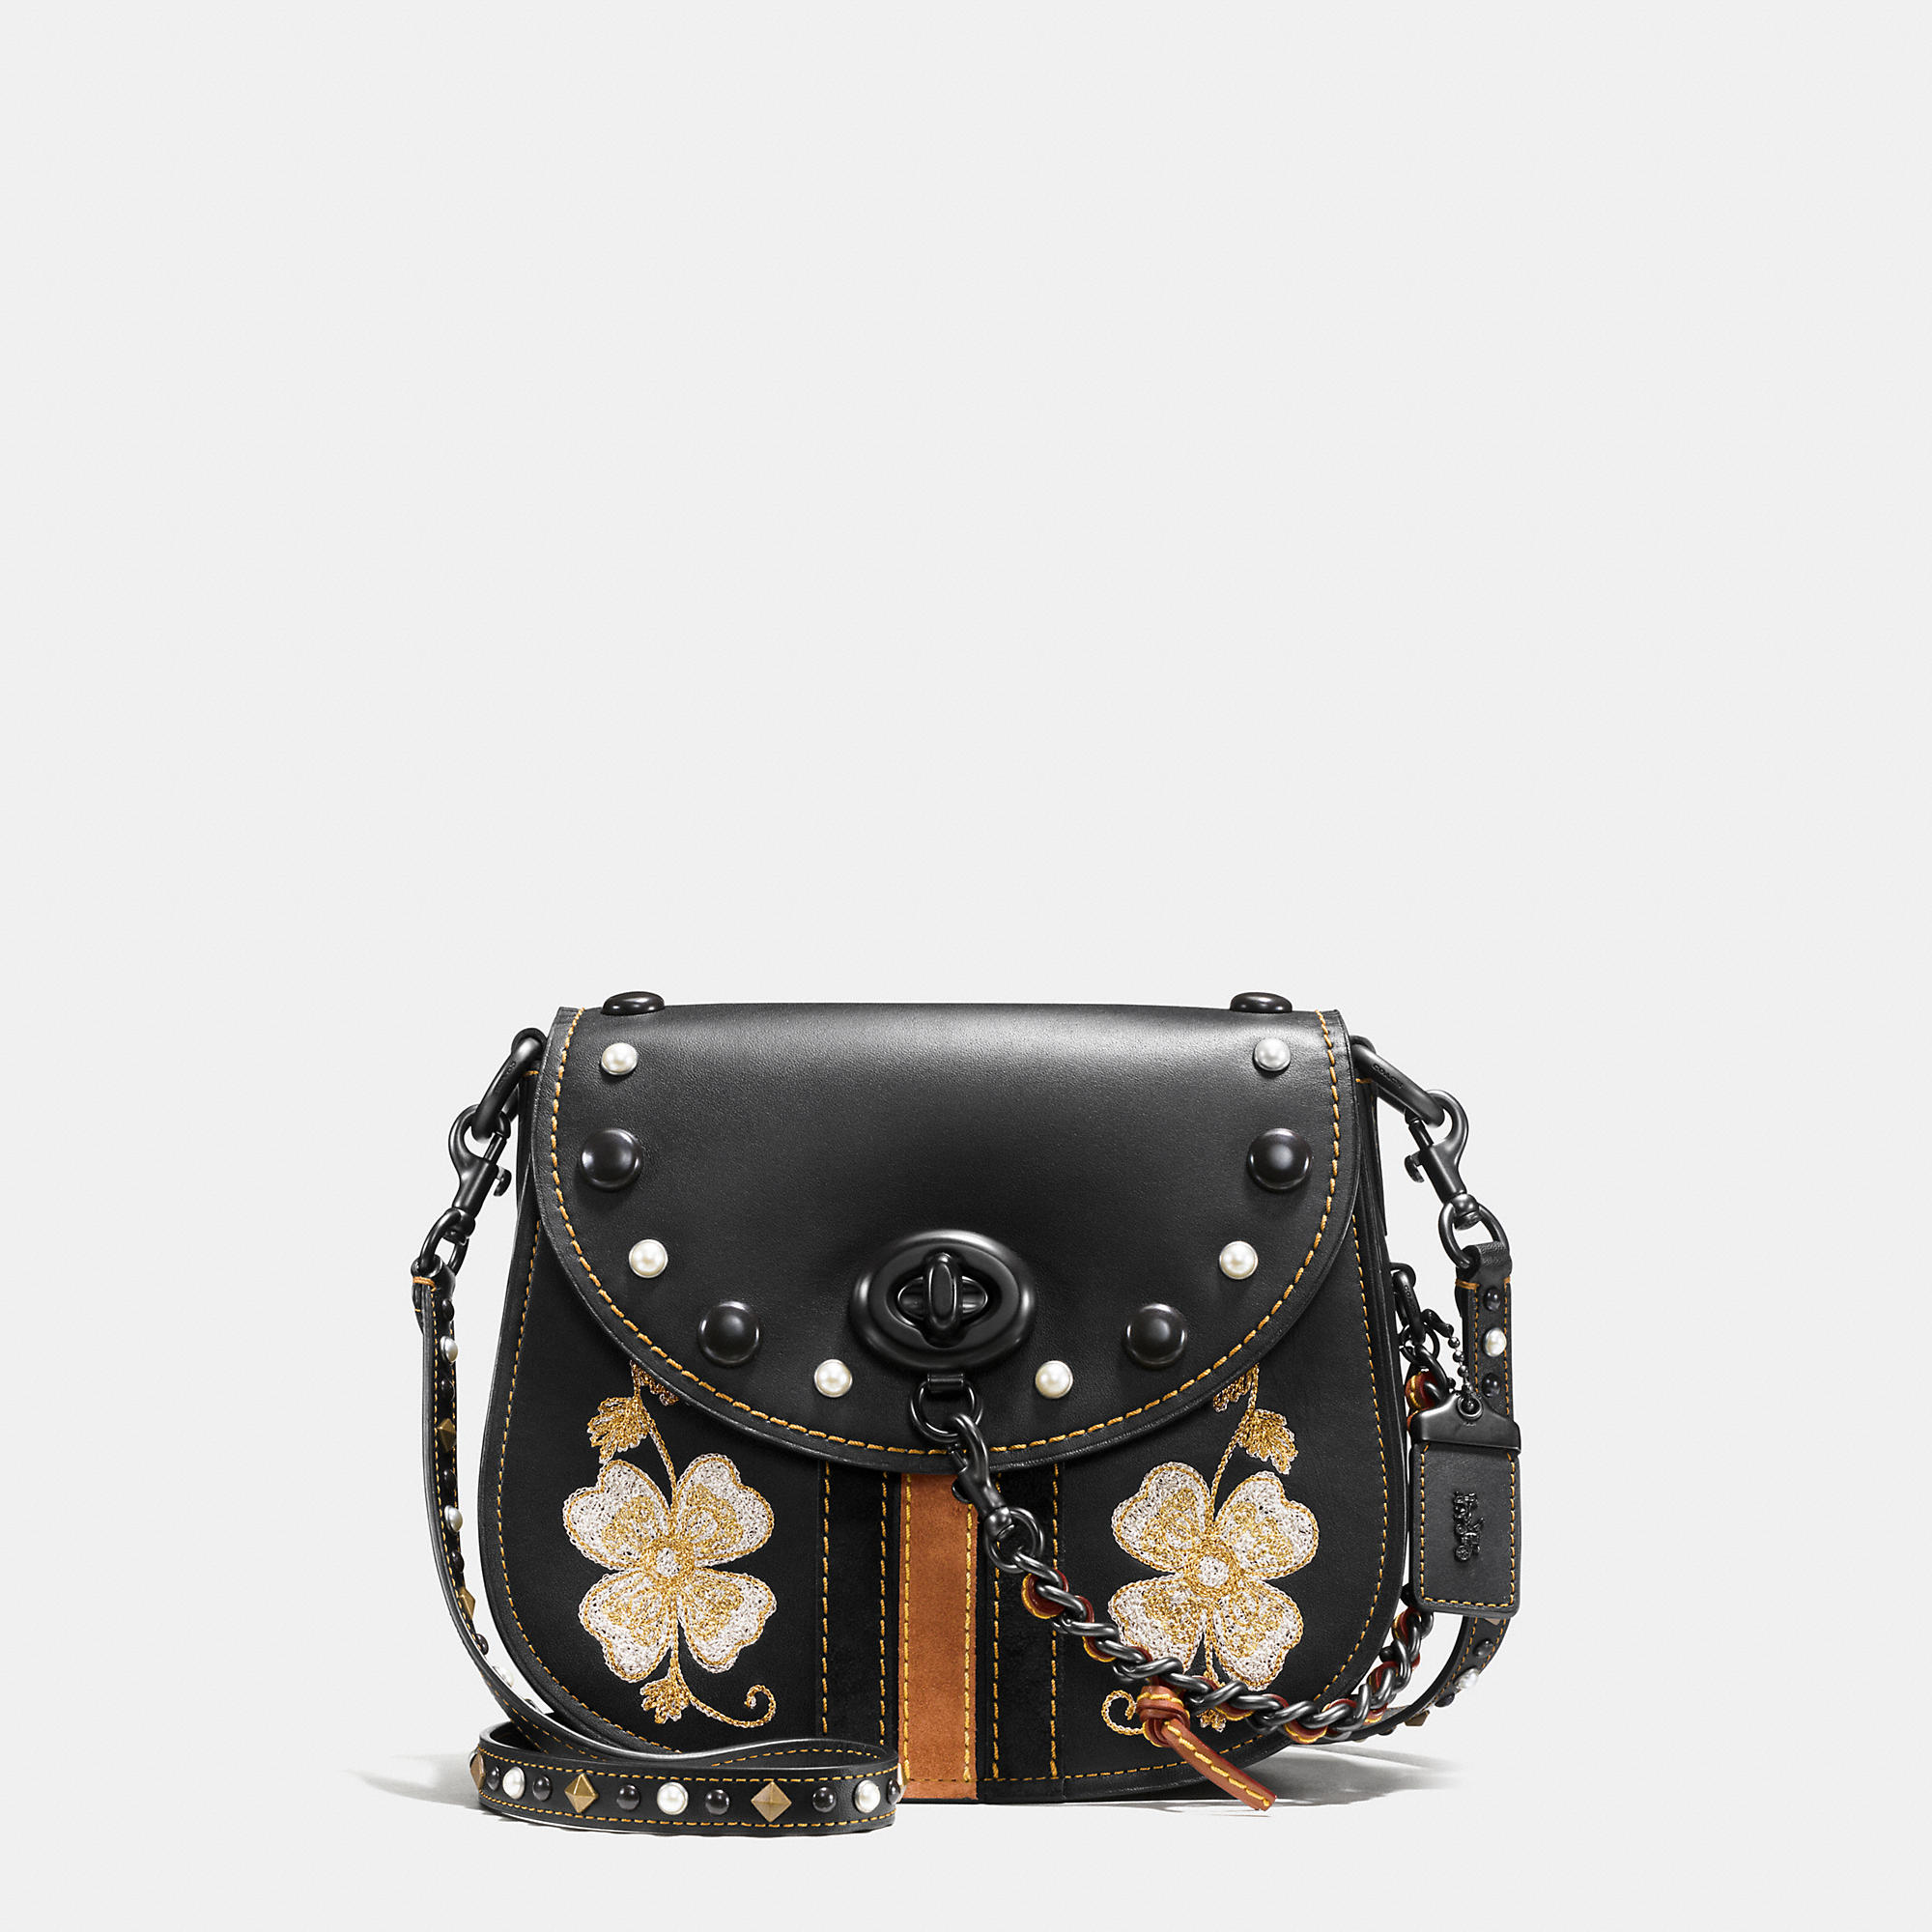 Coach Western Embroidery Turnlock Saddle Bag 23 In Glovetanned Leather